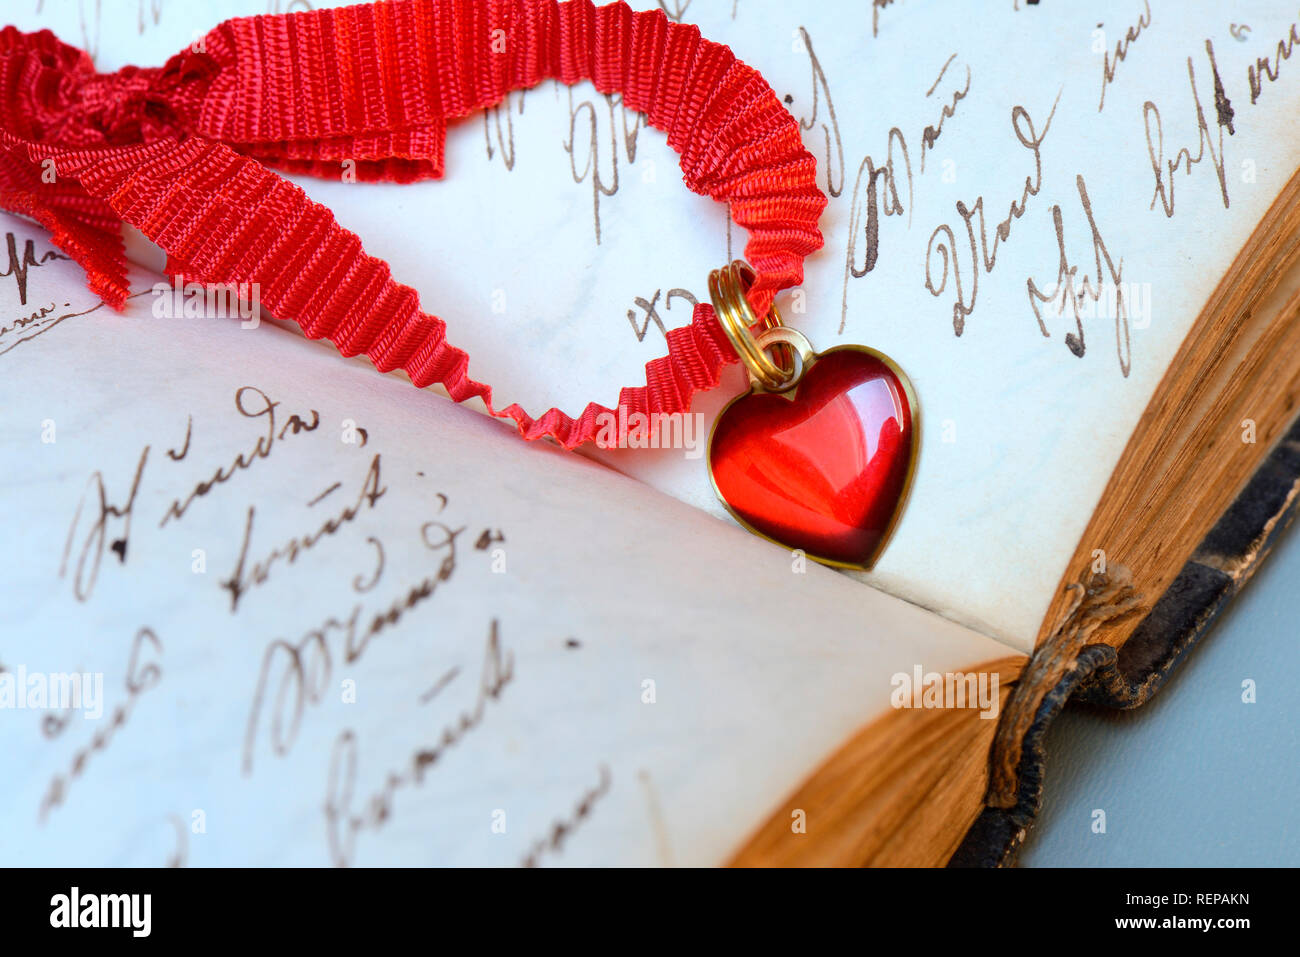 Heart on old book - Stock Image